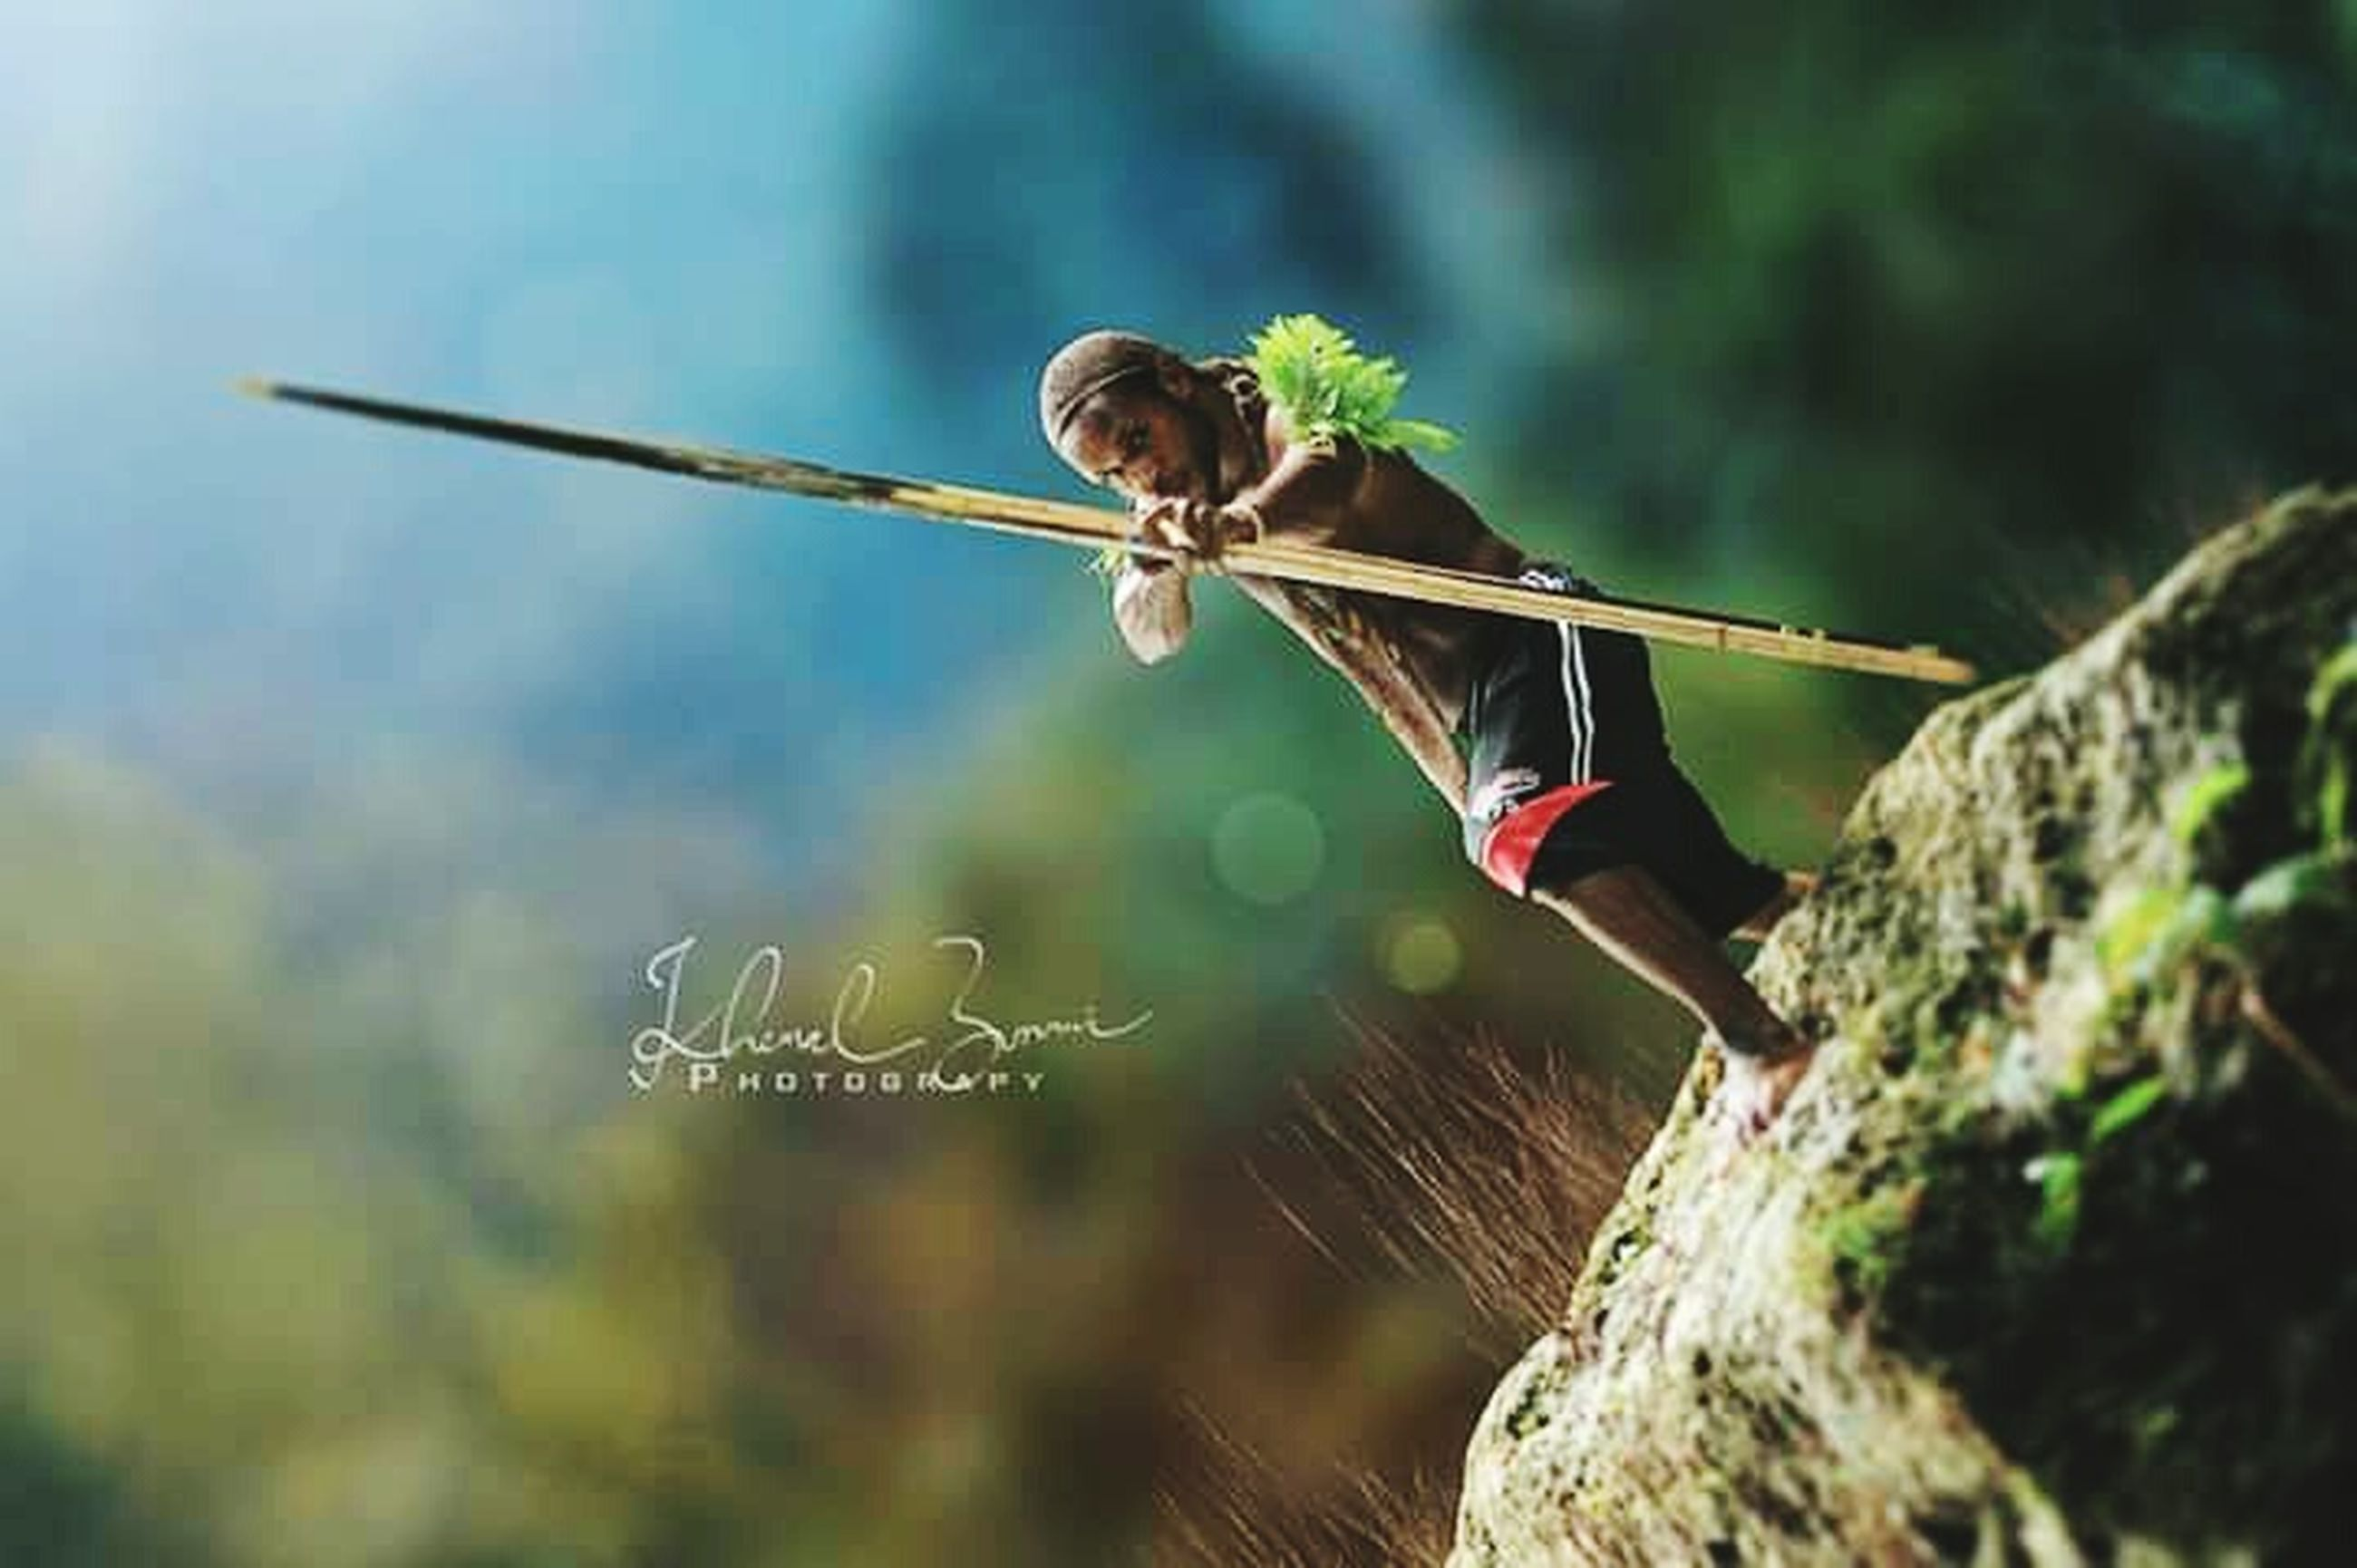 one person, leisure activity, day, concentration, nature, sport, skill, adult, selective focus, young adult, outdoors, determination, full length, focus on foreground, lifestyles, holding, women, limb, athlete, human arm